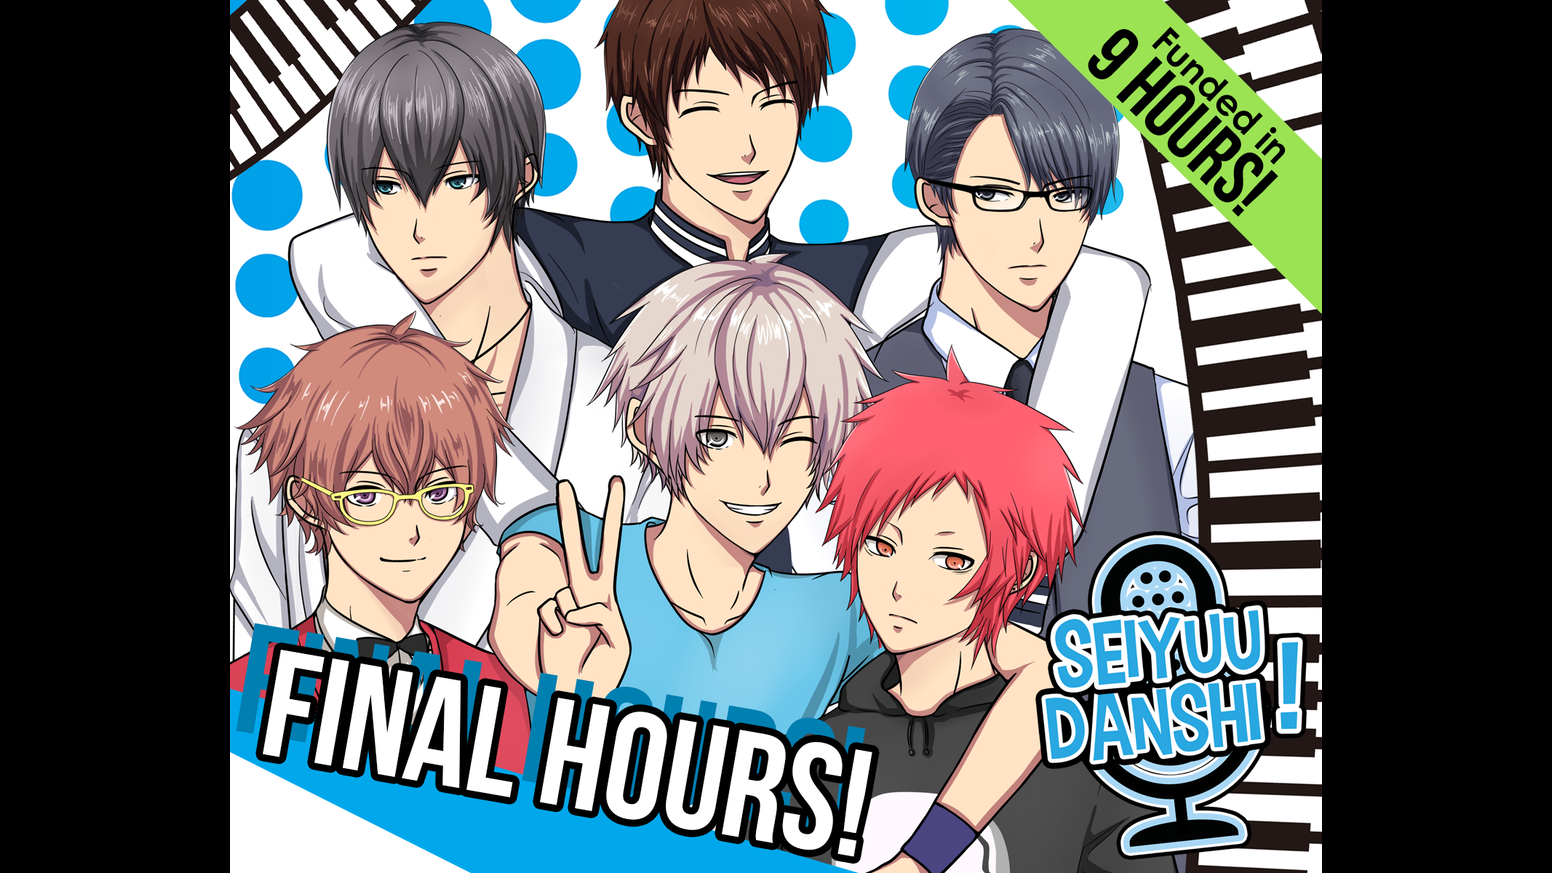 Seiyuu Danshi  English BL   Yaoi Dating Sim   Visual Novel by     A BL dating sim with reversible roles  Explore town  enjoy stories with lots of